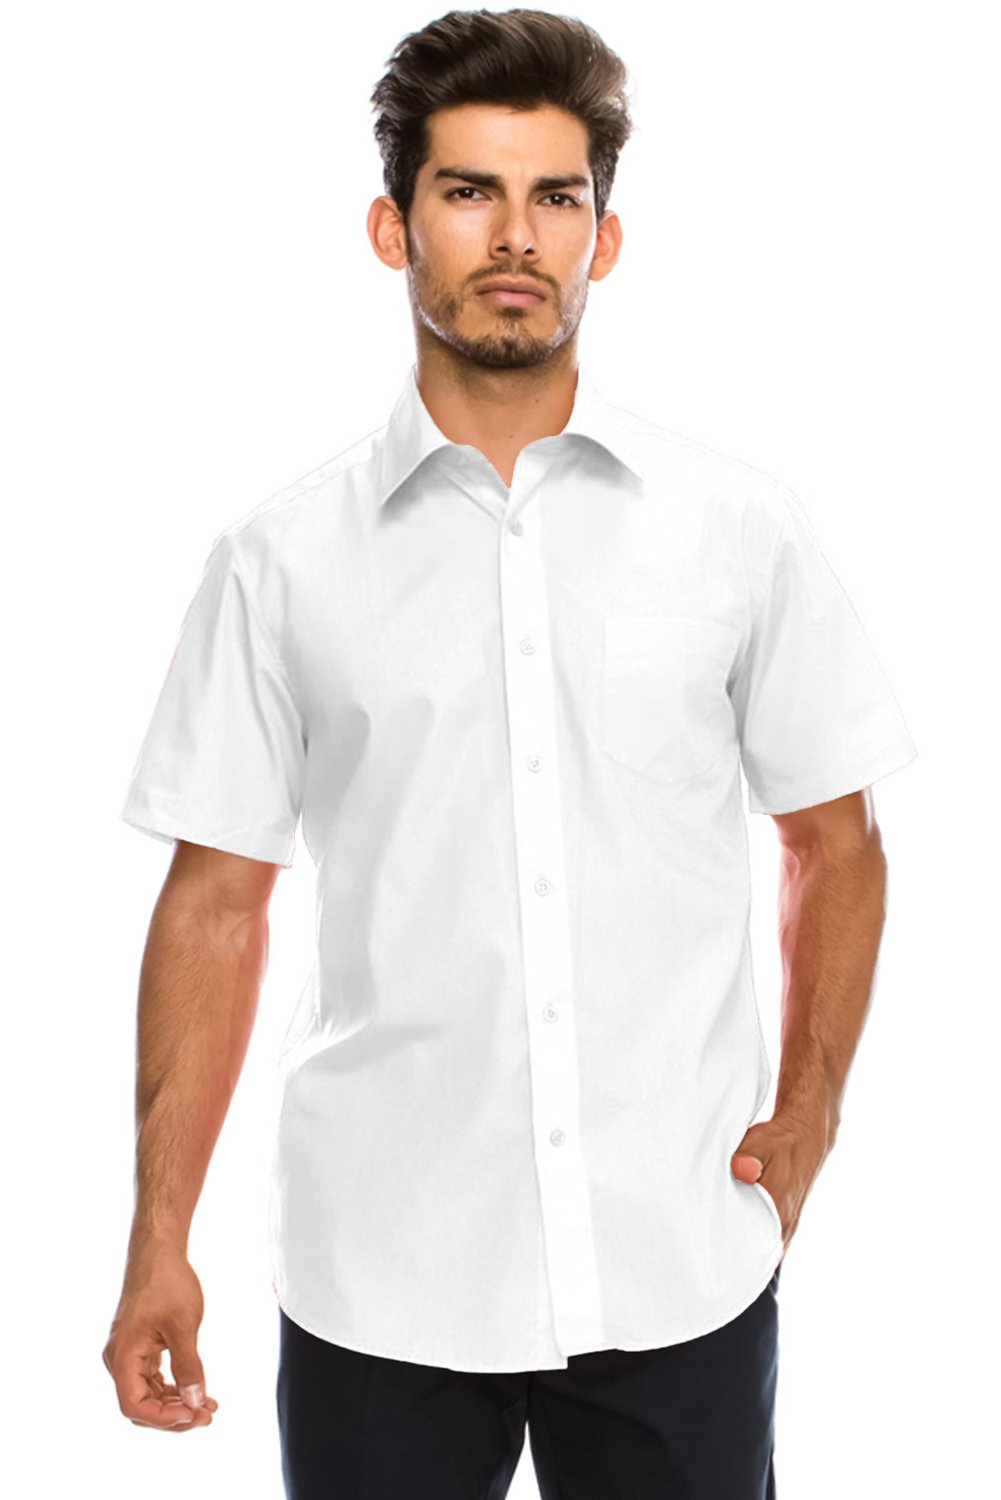 JC DISTRO Men's Regular-Fit Solid Color Short Sleeve Dress Shirt, White Shirts (XL)